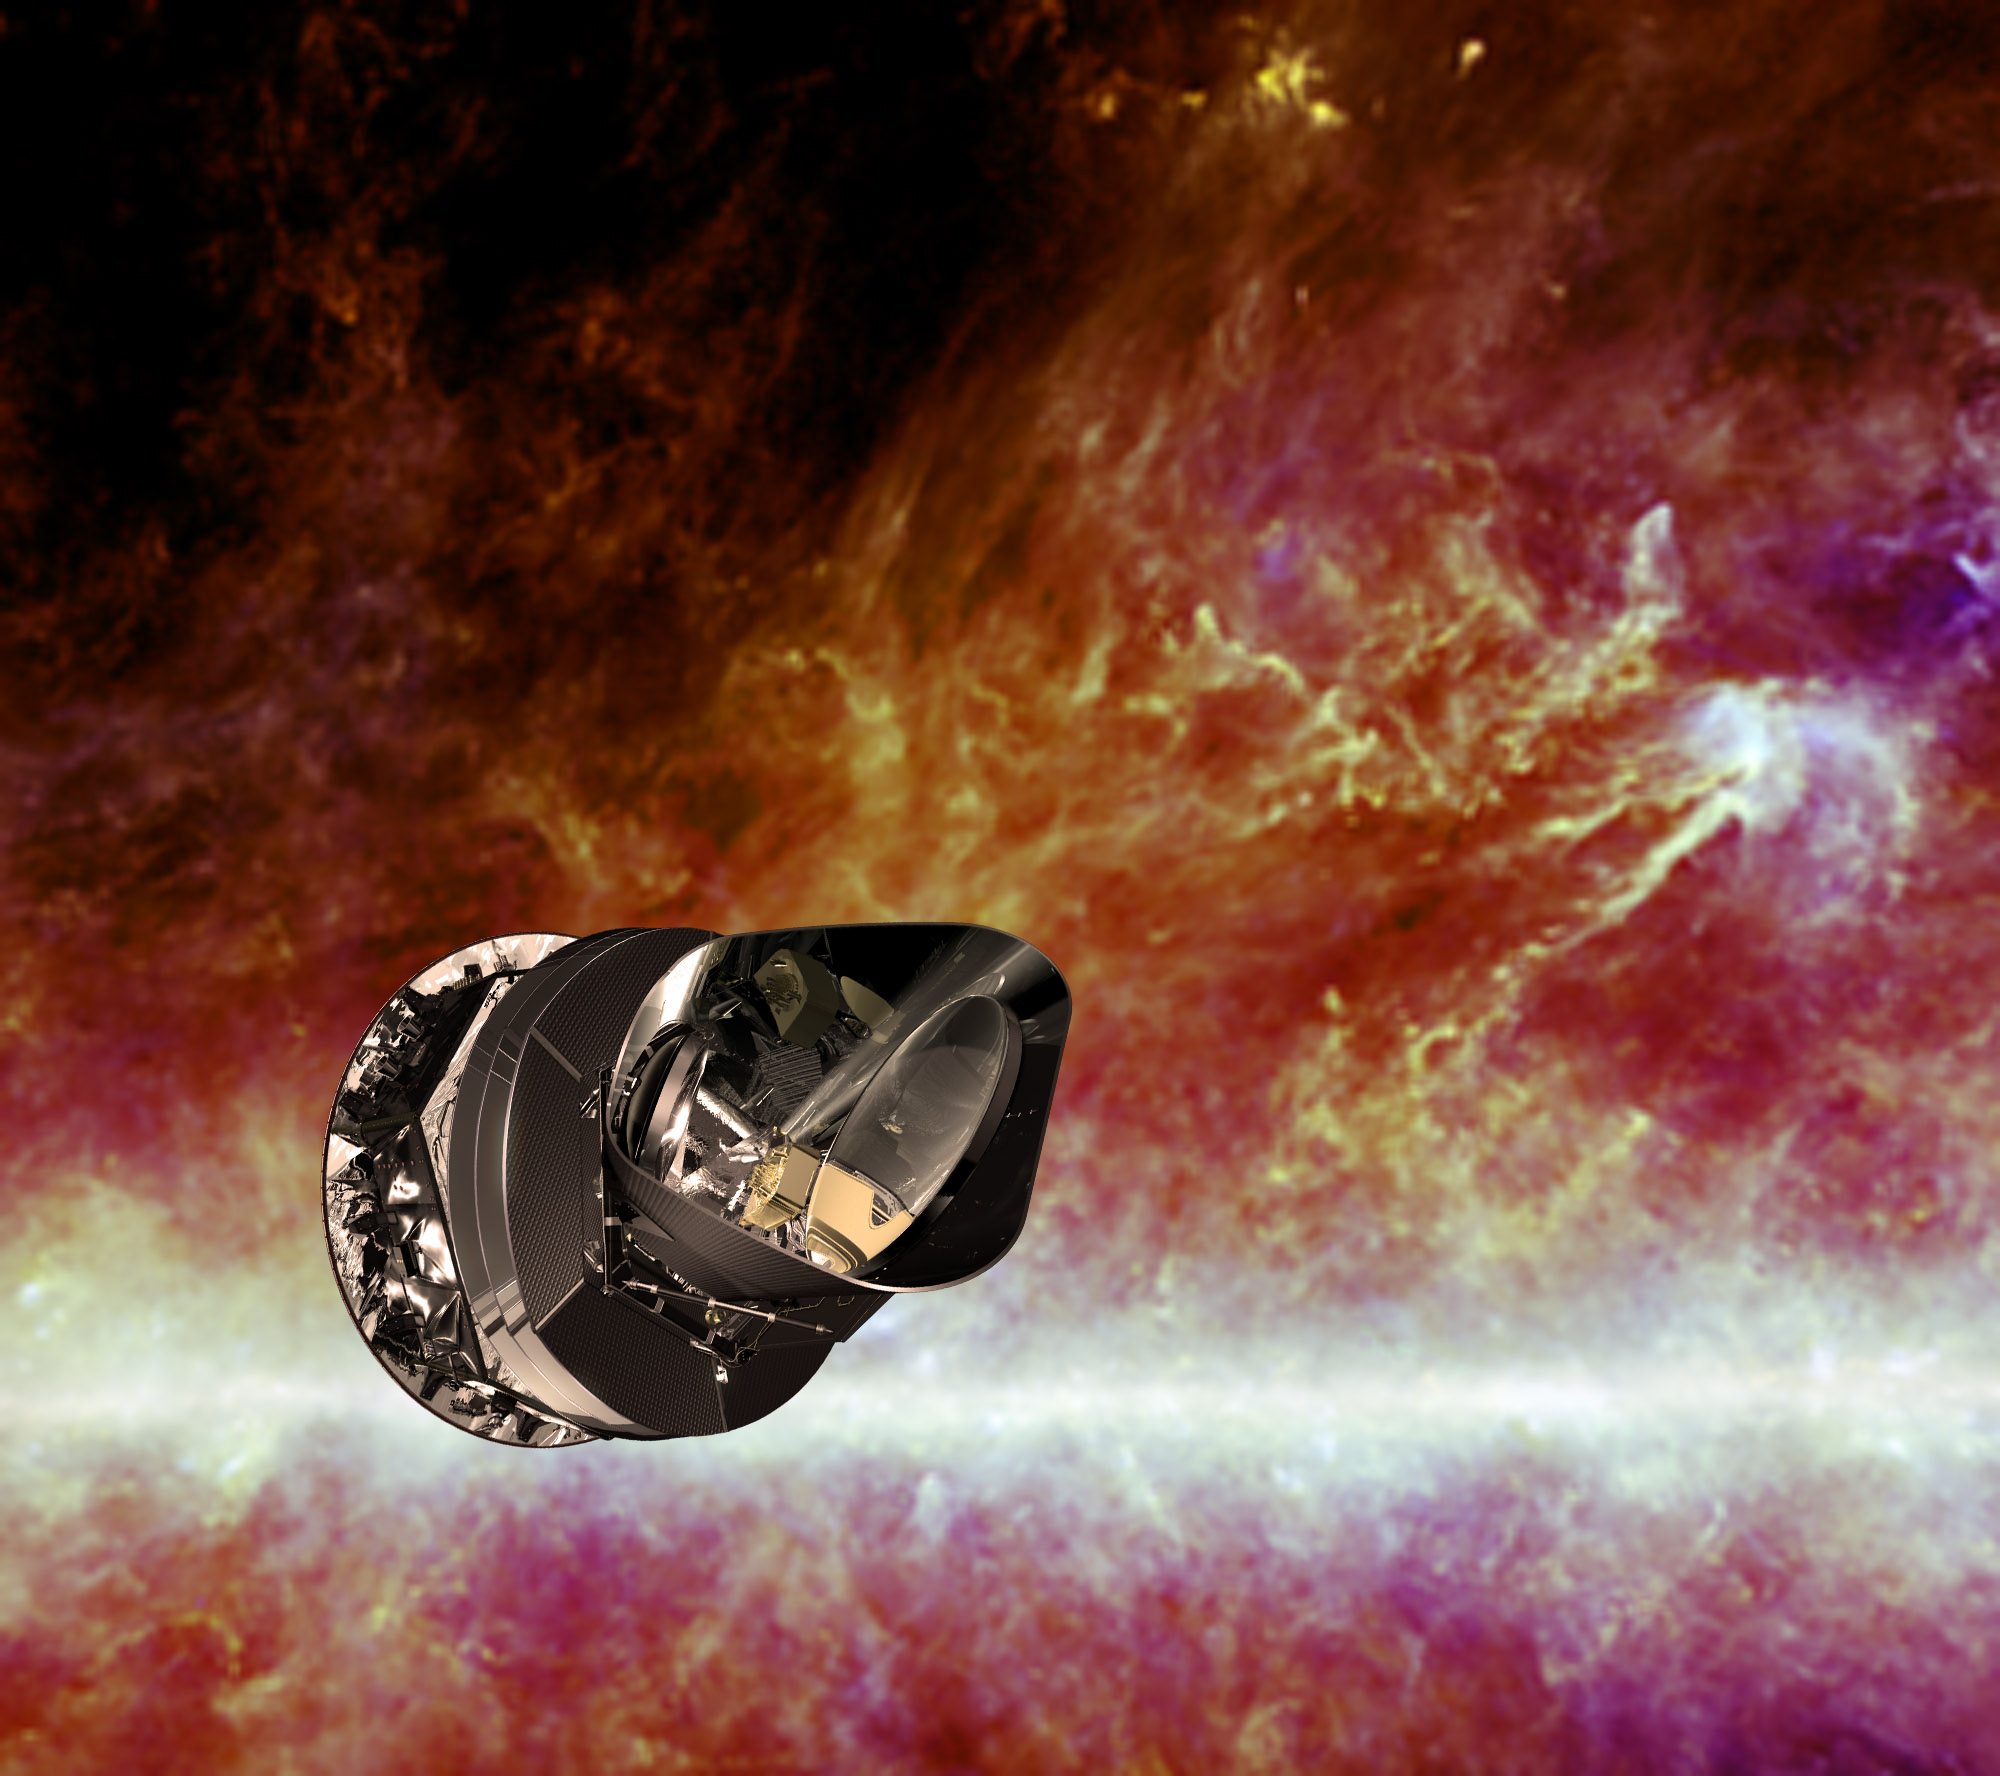 ESA's Planck Spacecraft